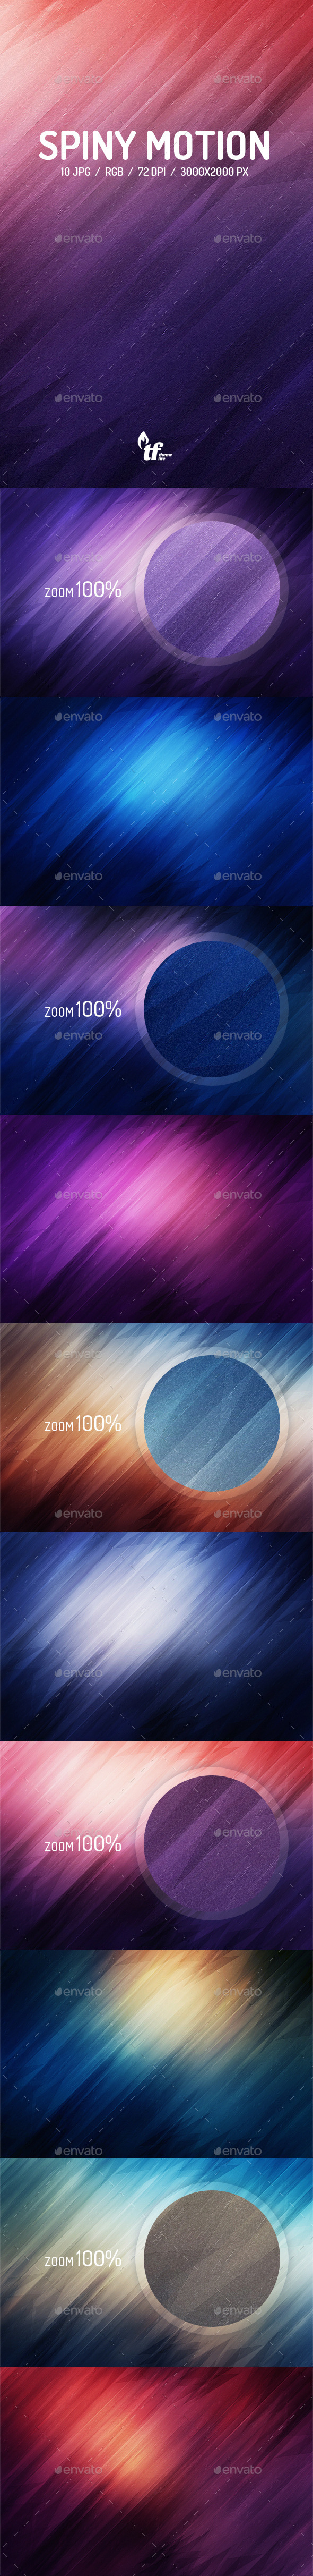 GraphicRiver Spiny Motion Background 8794473